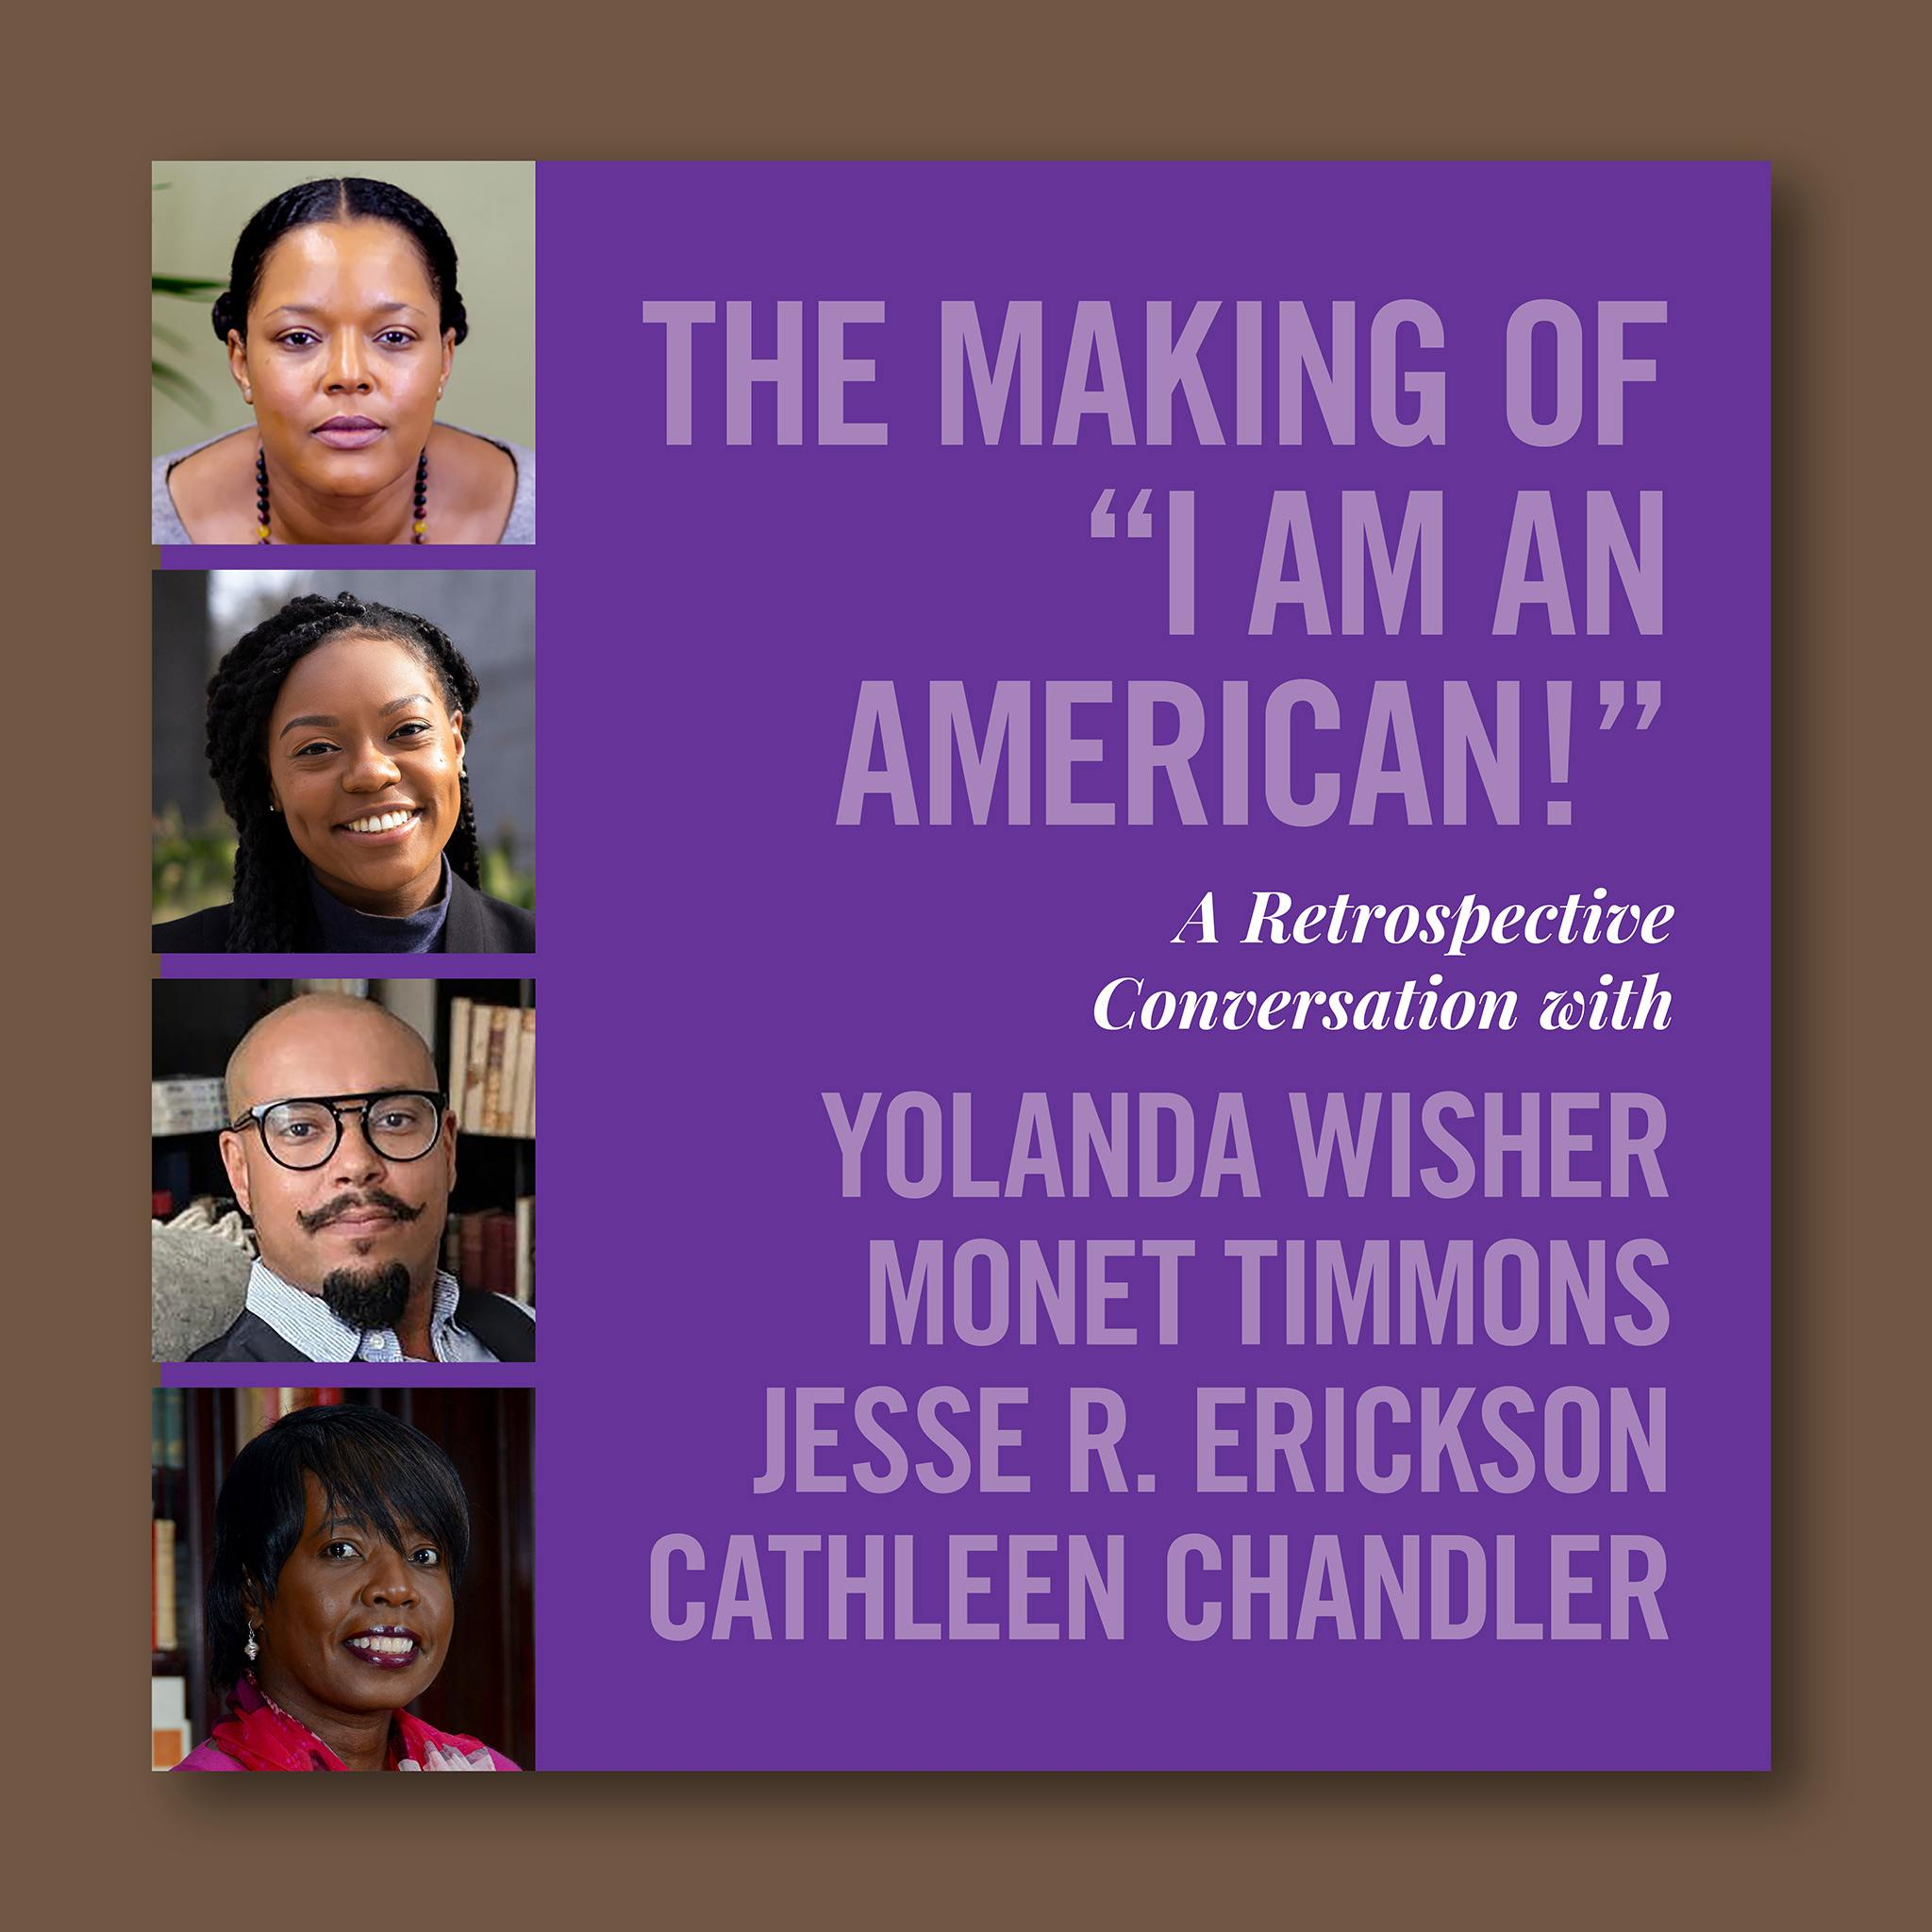 "Episode 8: The Making of ""I Am an American!"": A Retrospective Conversation with Yolanda Wisher, Monet Timmons, Jesse Erickson, and Cathleen Chandler"